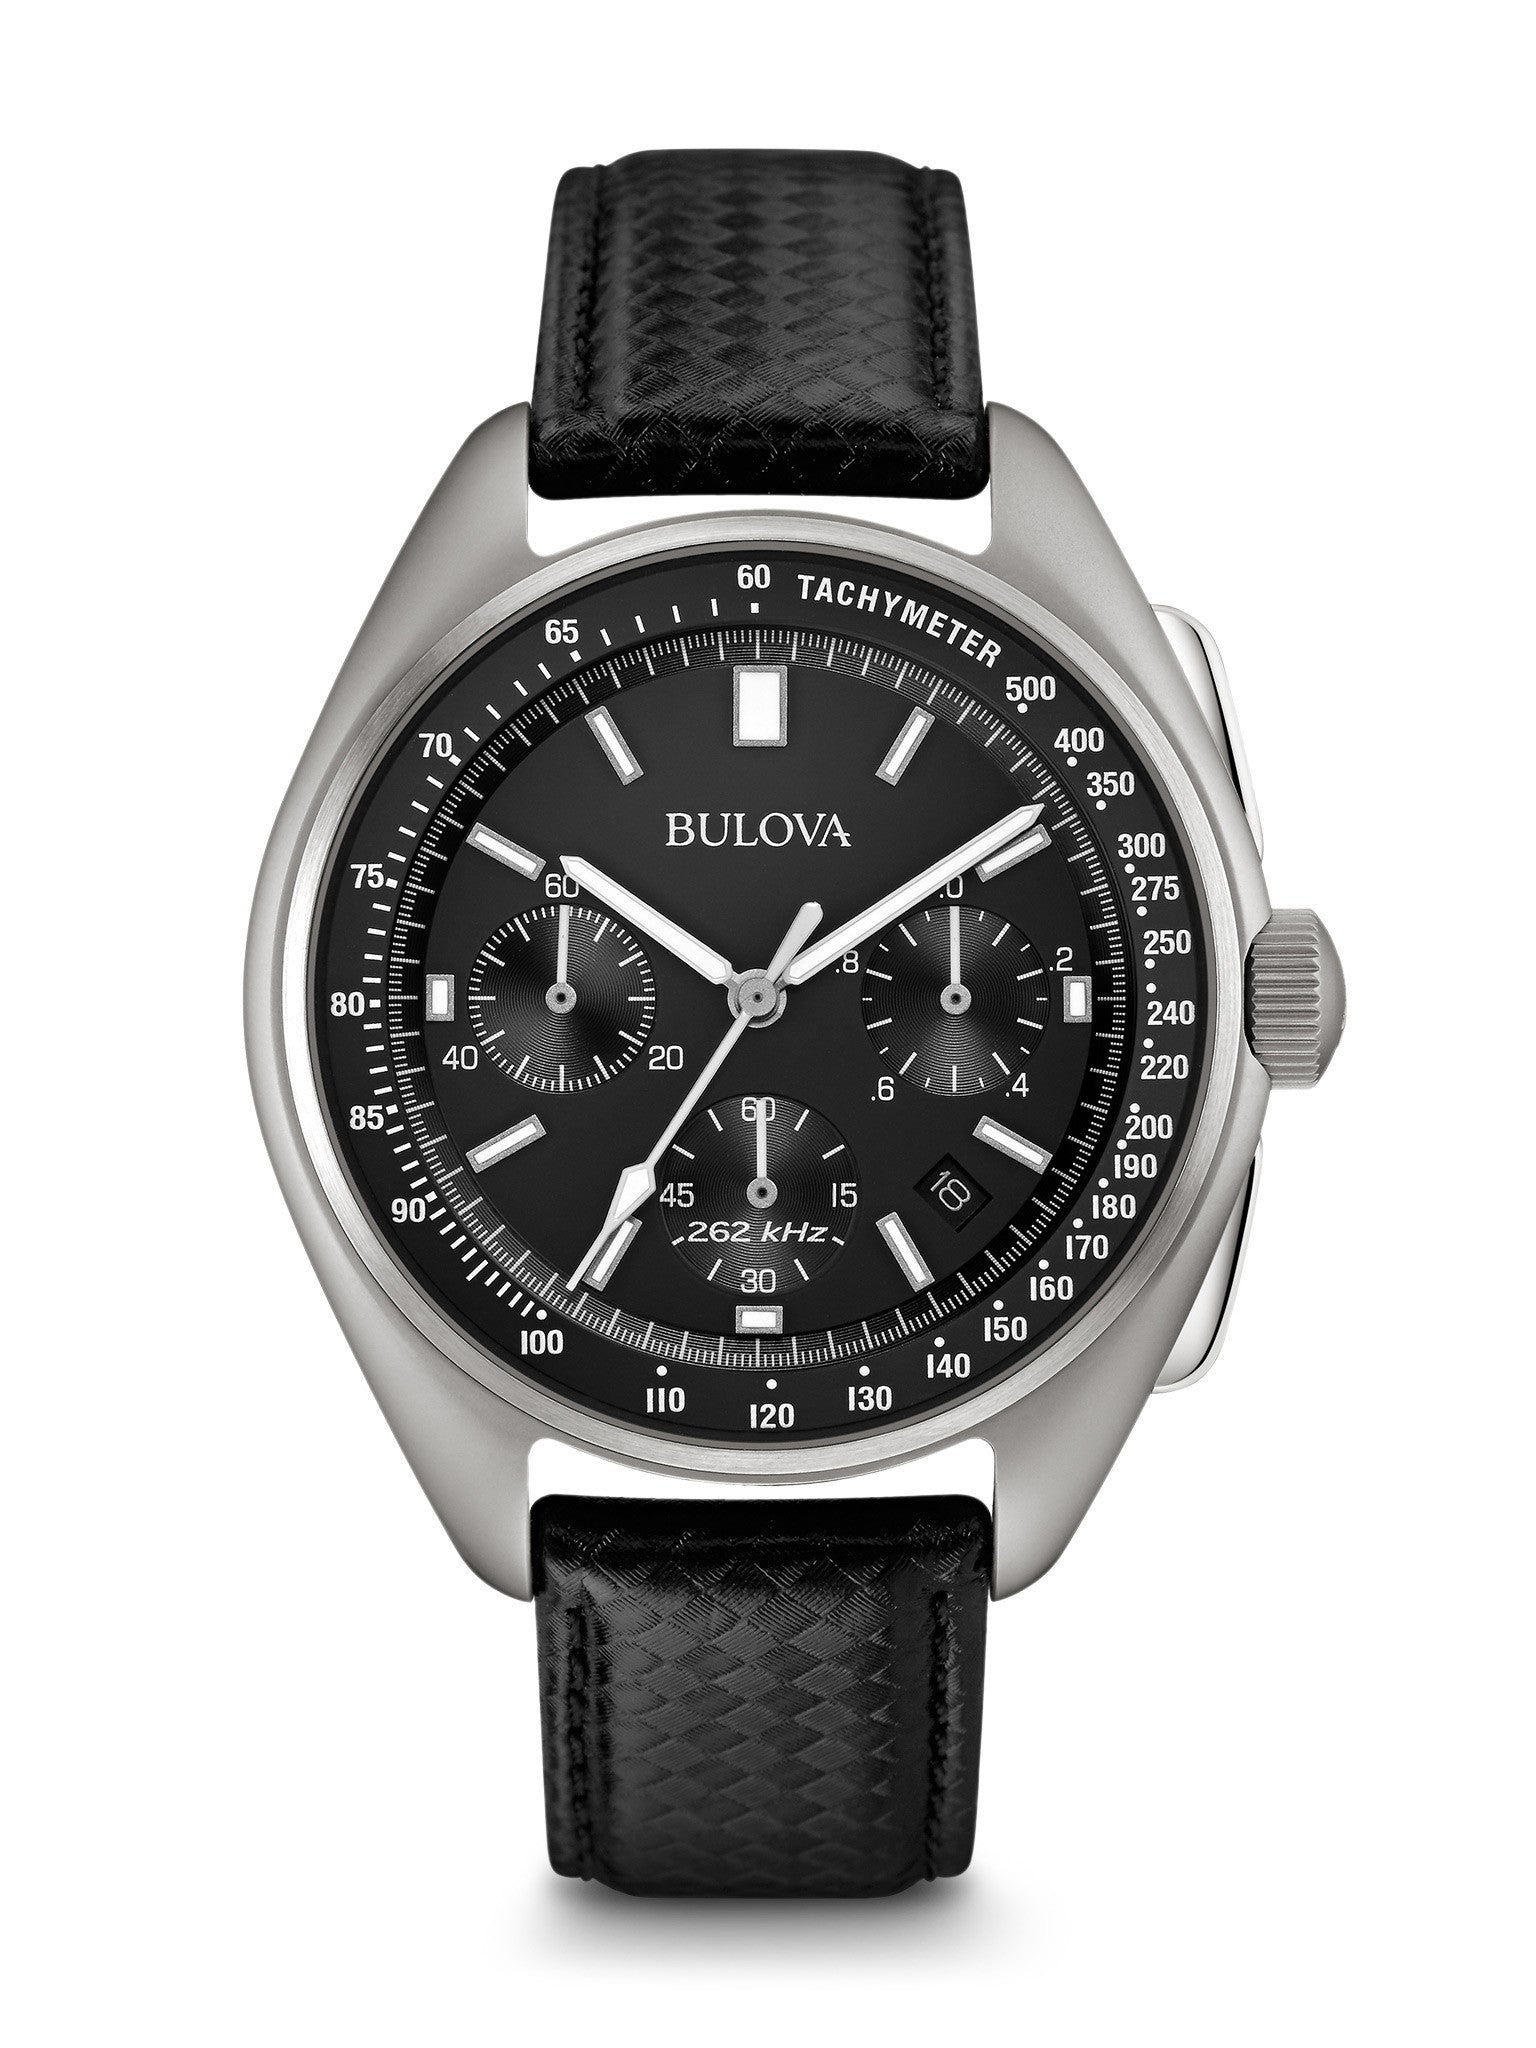 Bulova Men's 96B251 Special Edition Moon Chronograph Watch